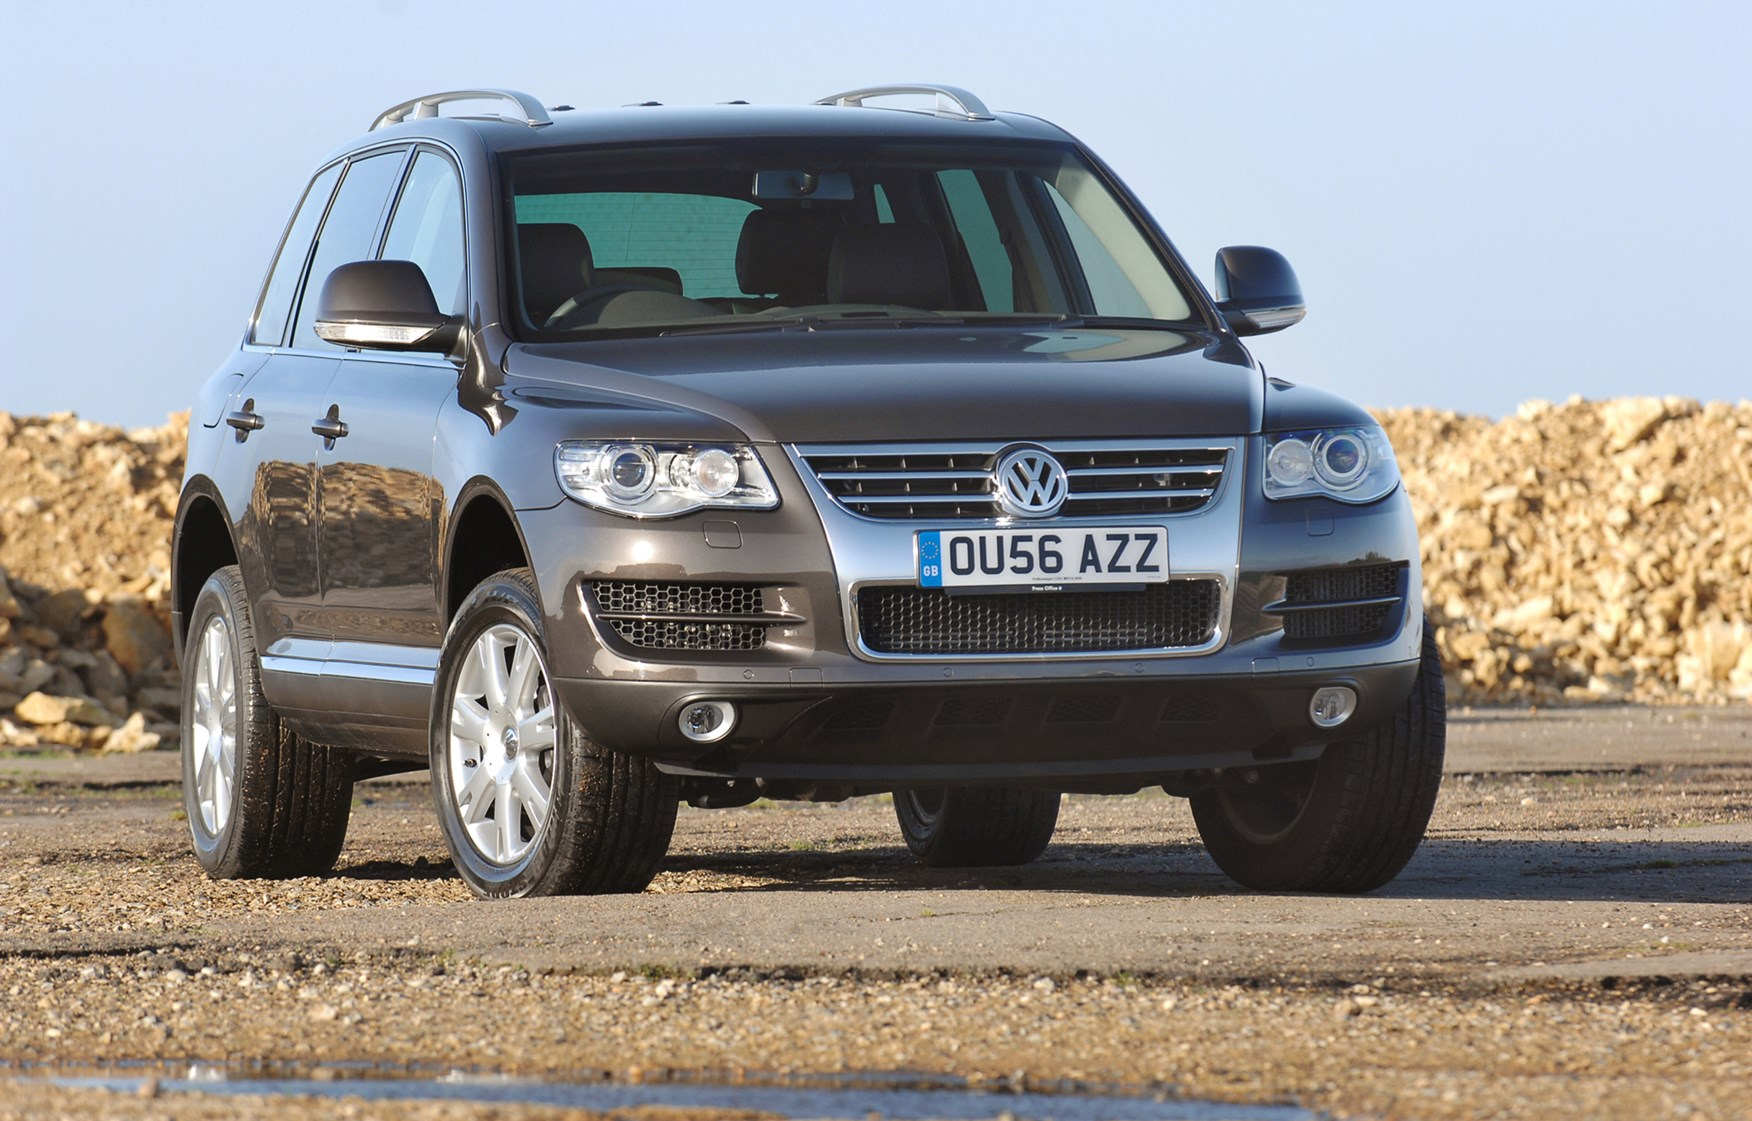 Volkswagen touareg estate review 2003 2009 parkers fandeluxe Choice Image